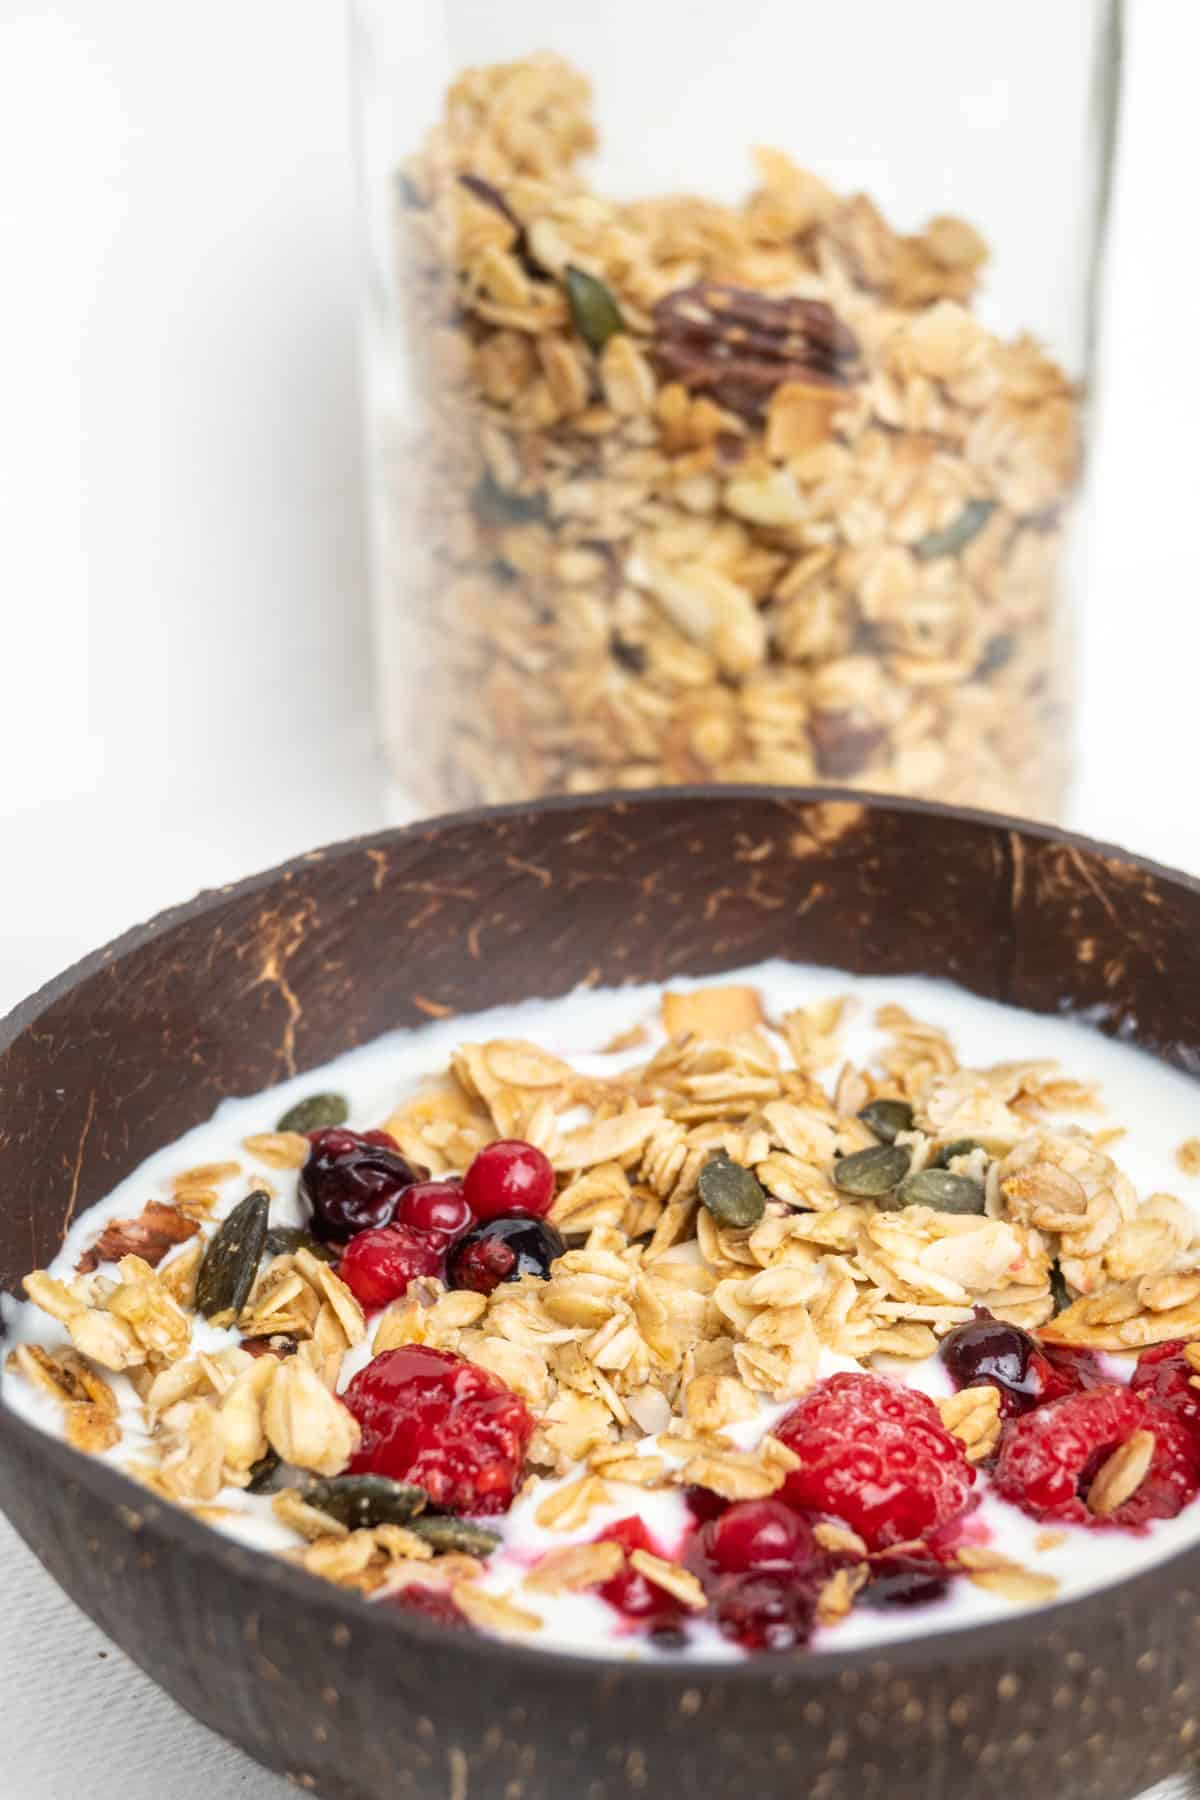 In the foreground, a coconut bowl with granola and fruit on soy yoghurt, in the background granola stored in a tall glass jar.